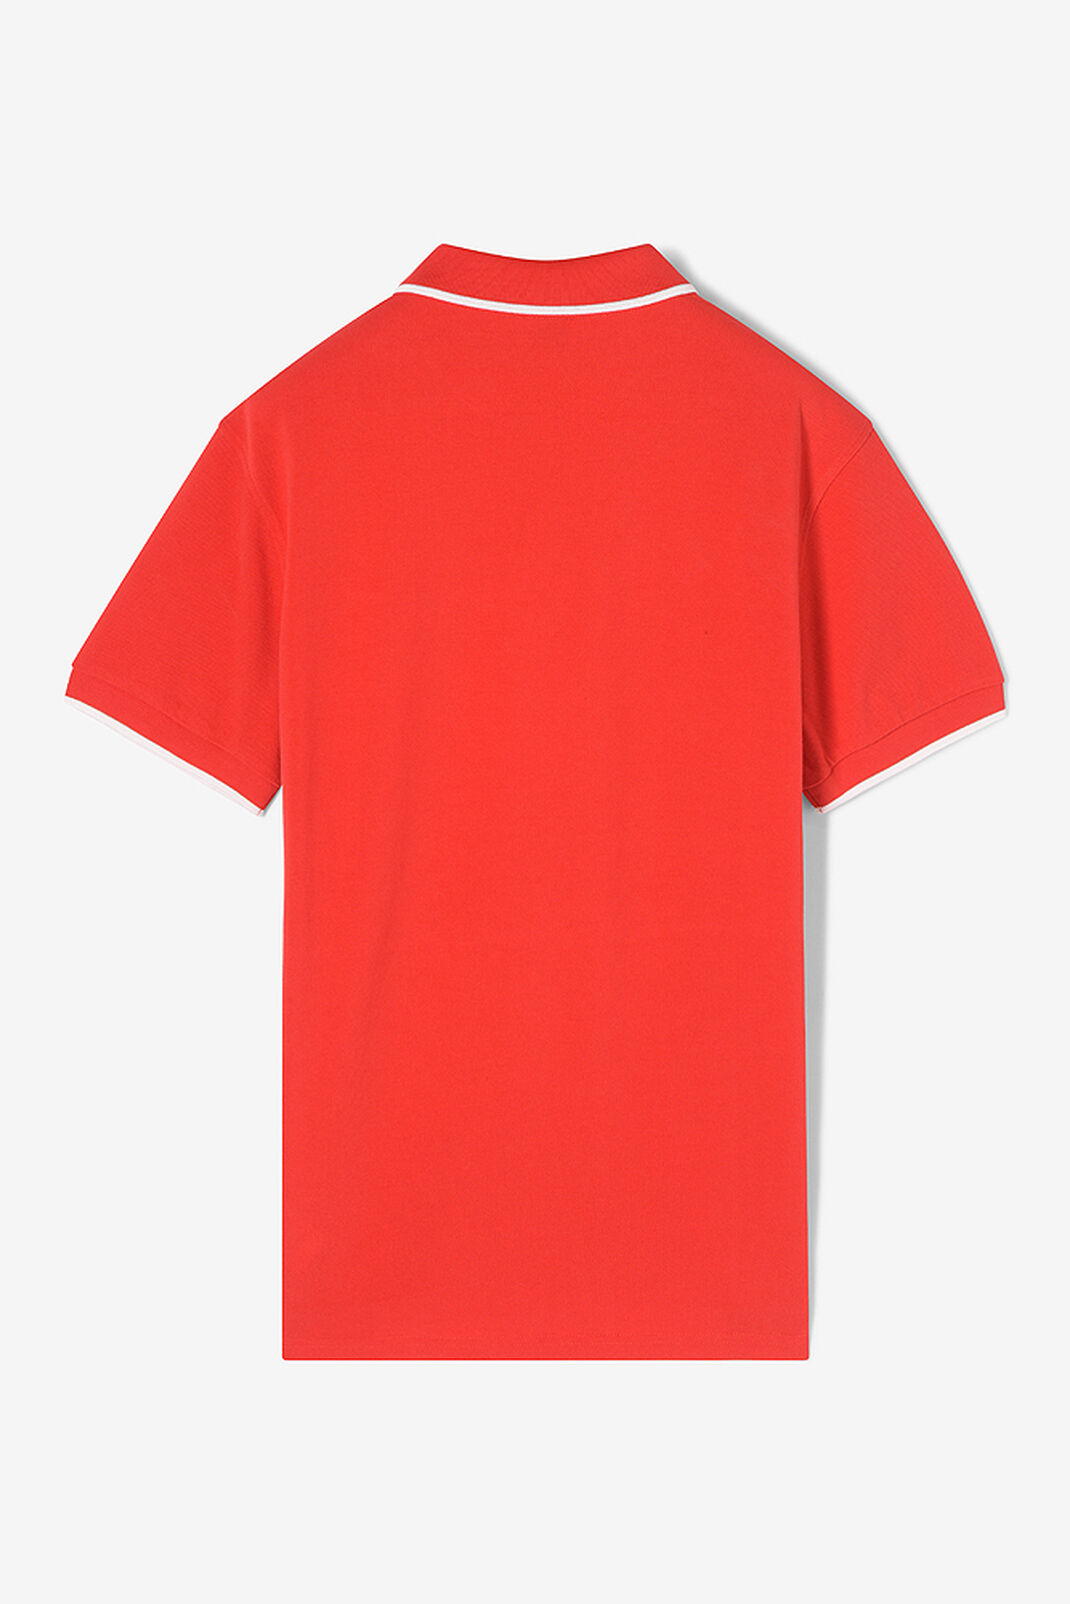 MEDIUM RED Regular Polo Shirt for men KENZO